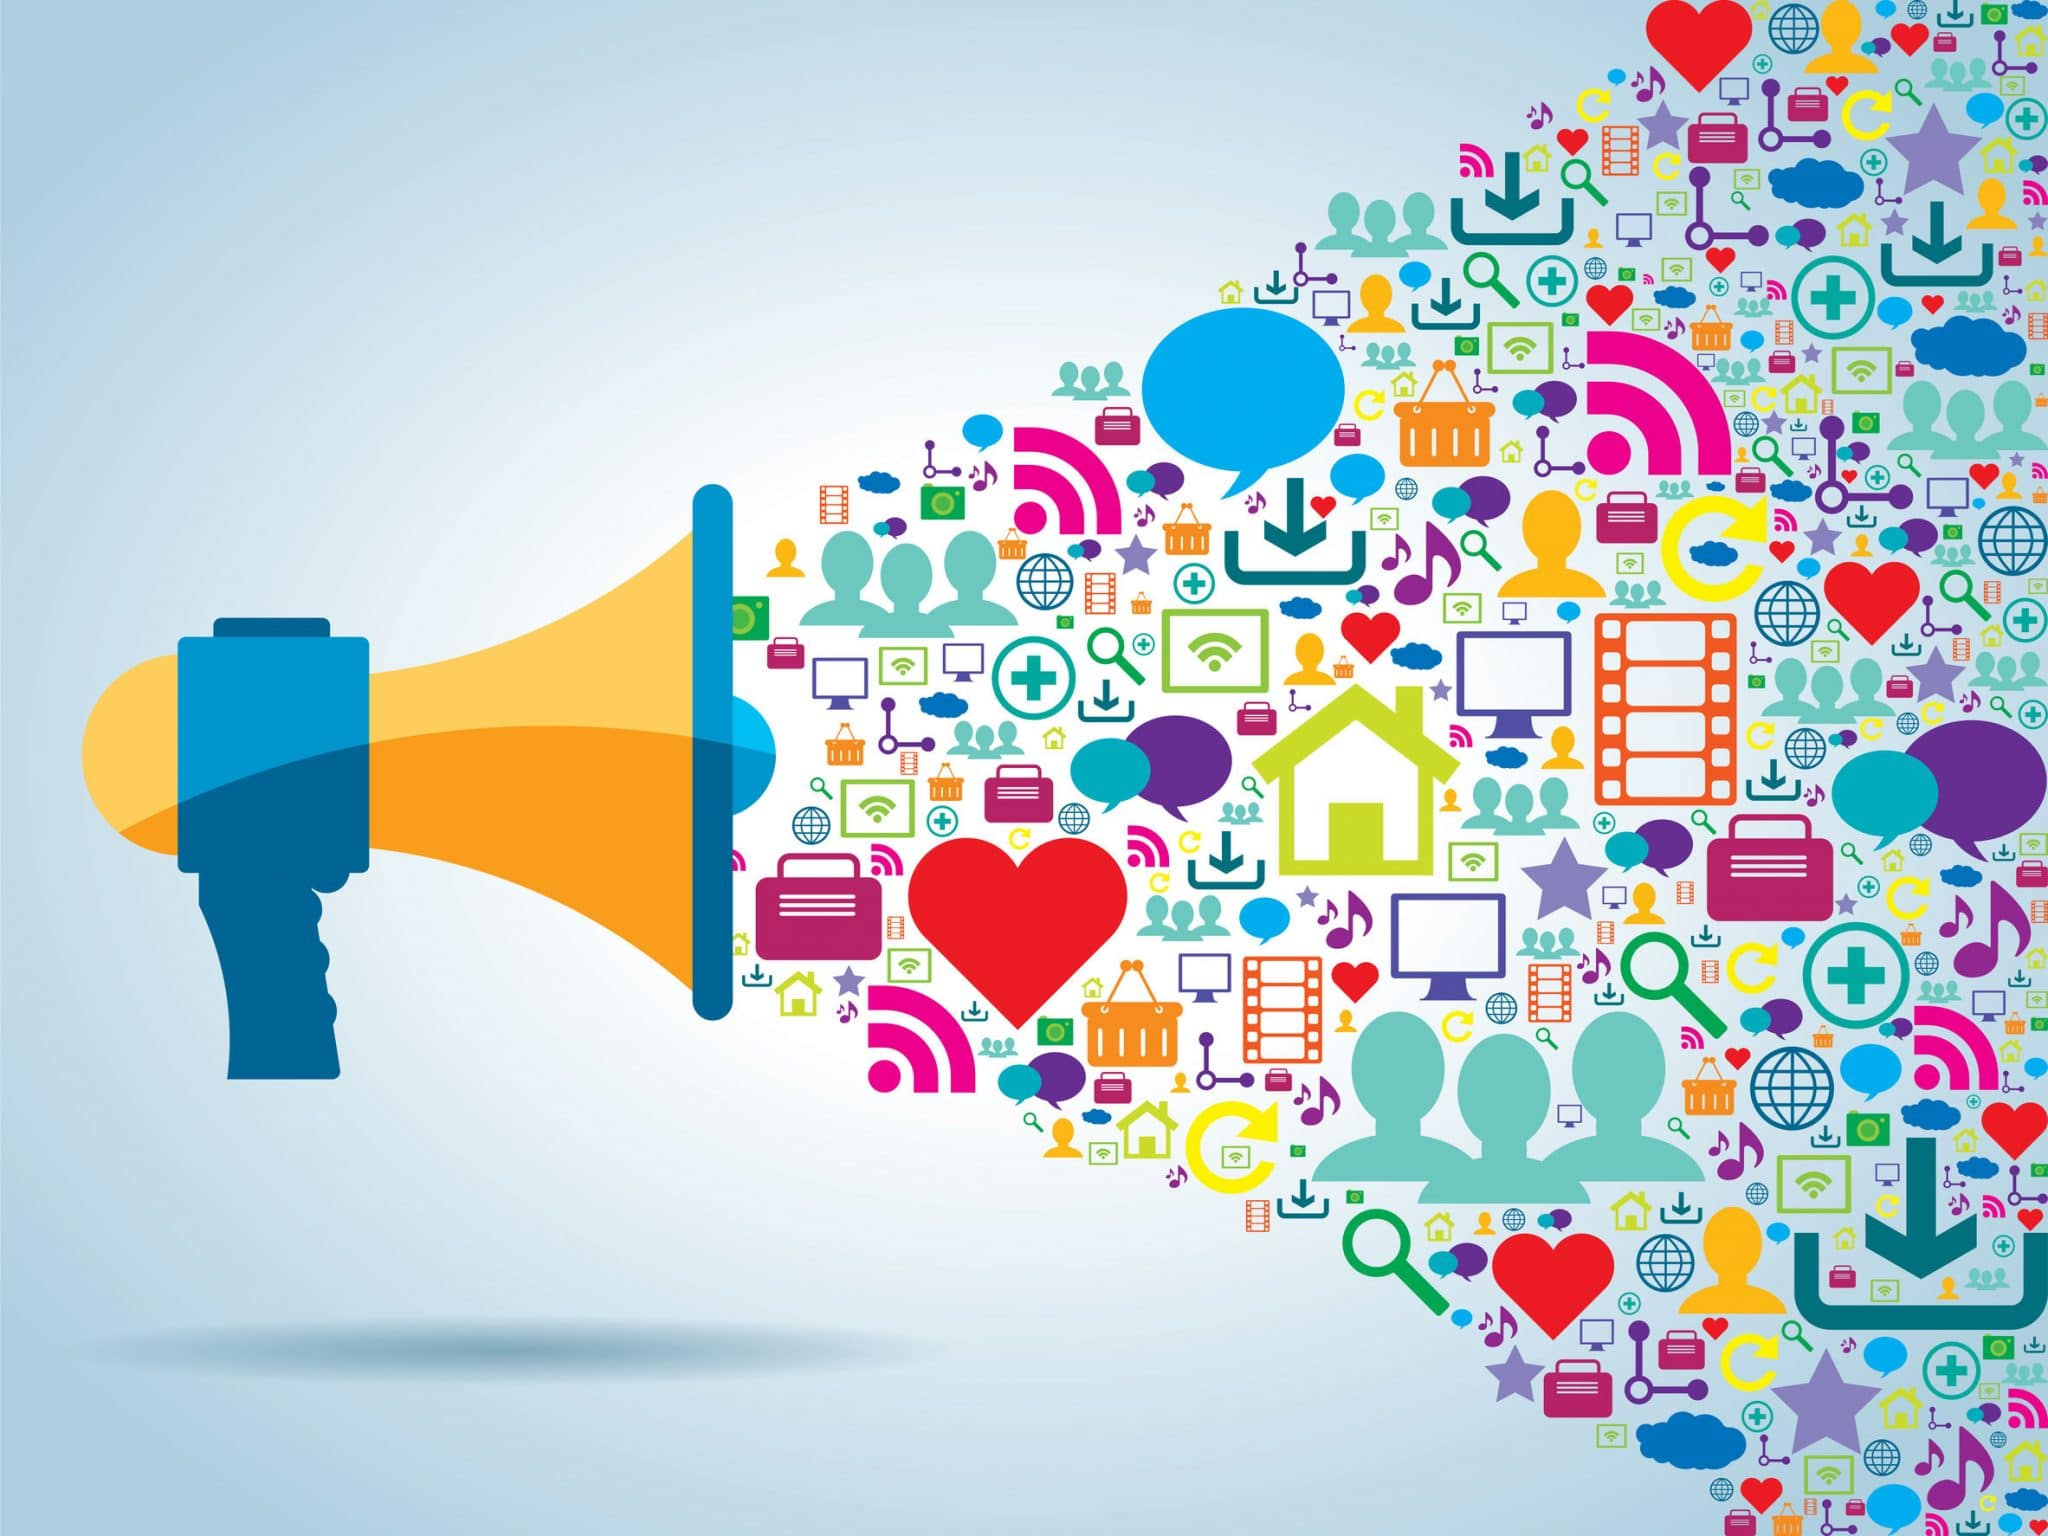 Find your audience with social media advertising